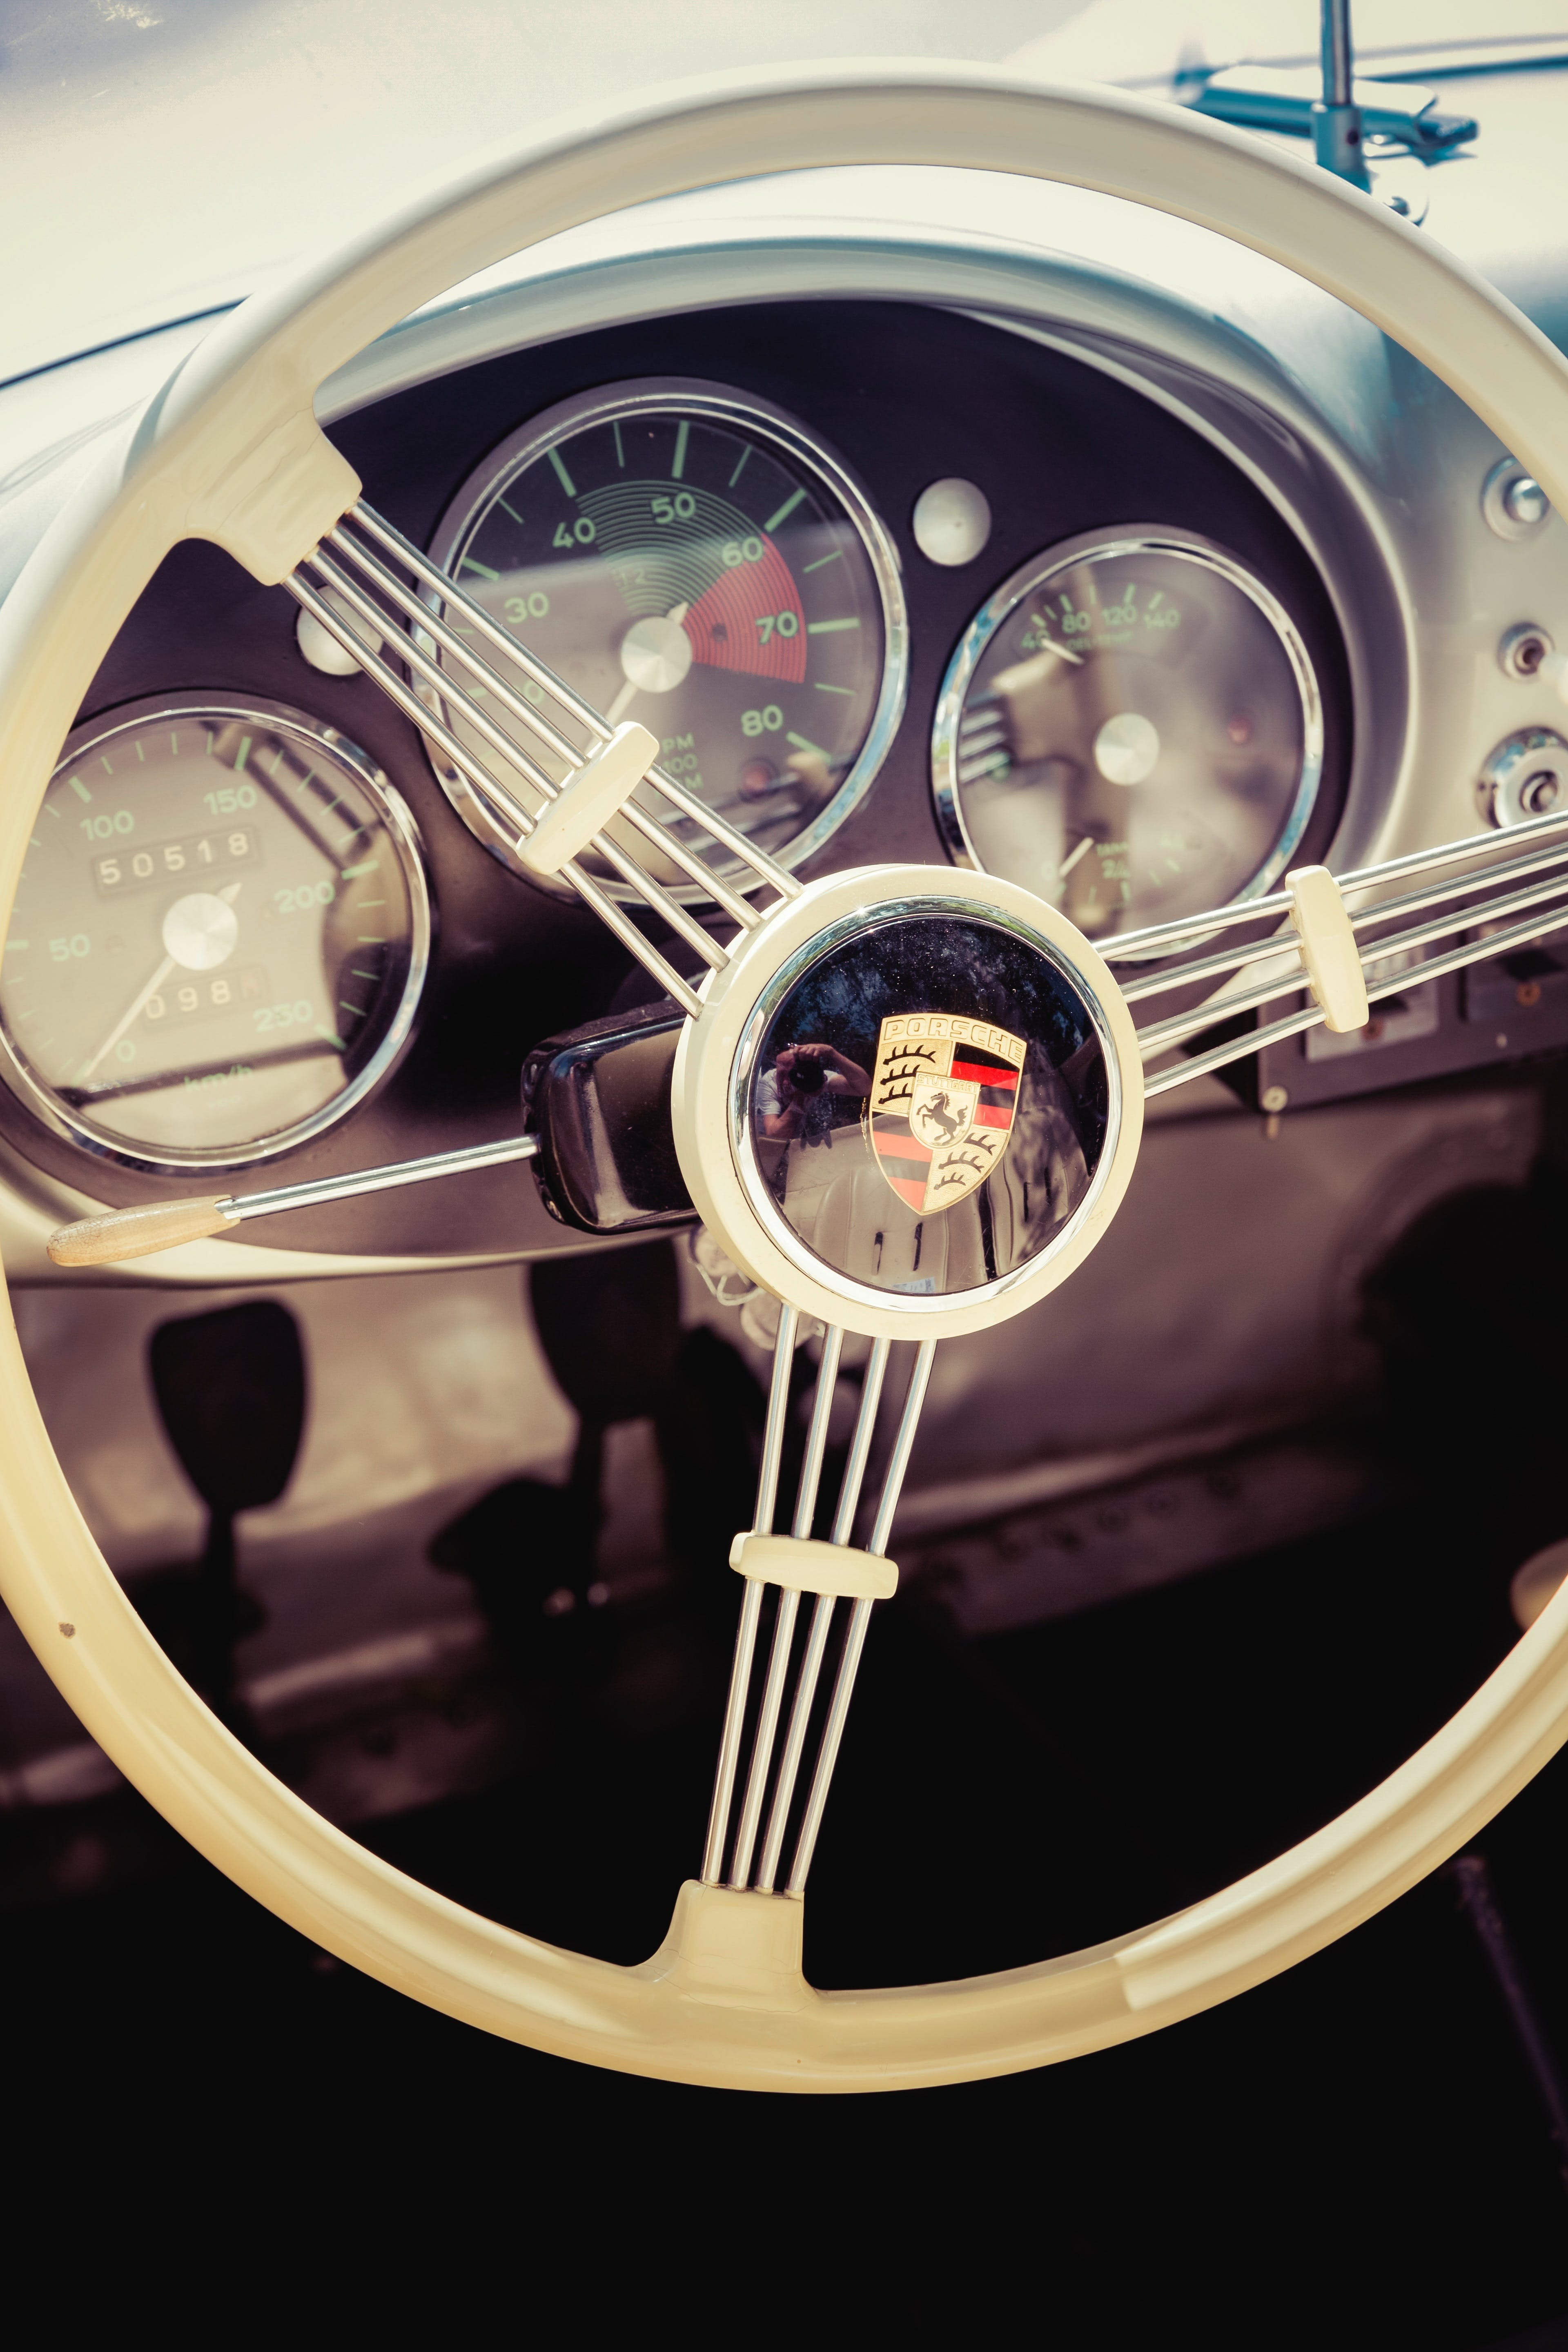 Free stock photo of car, classic car, coat of arms, driving